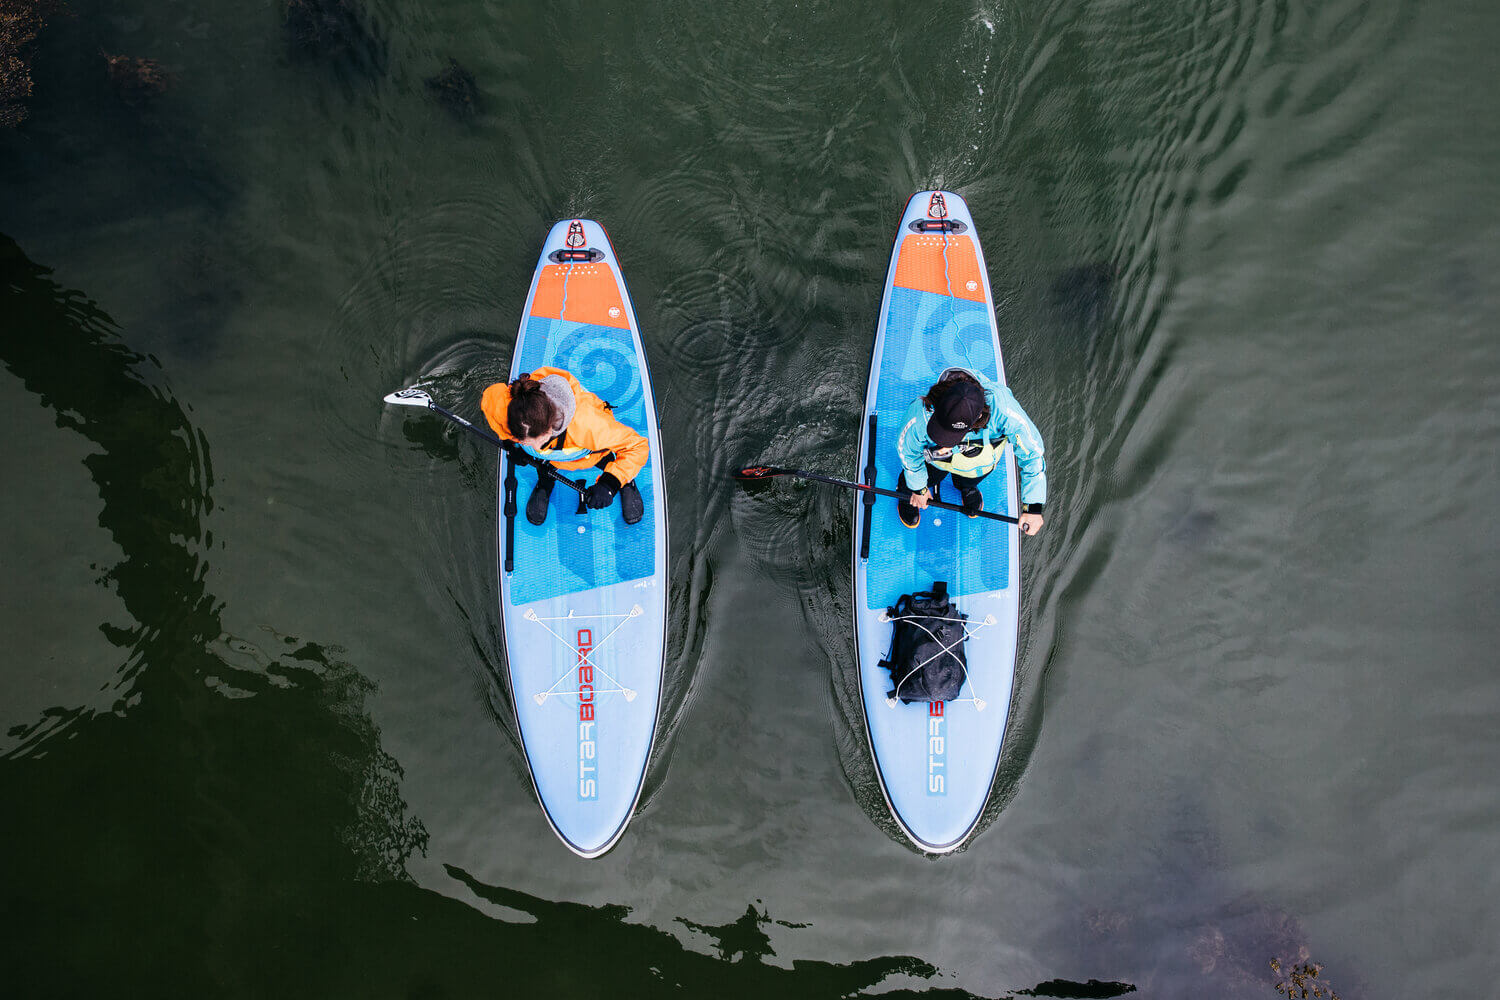 Buy a paddleboard according to the SUP chart